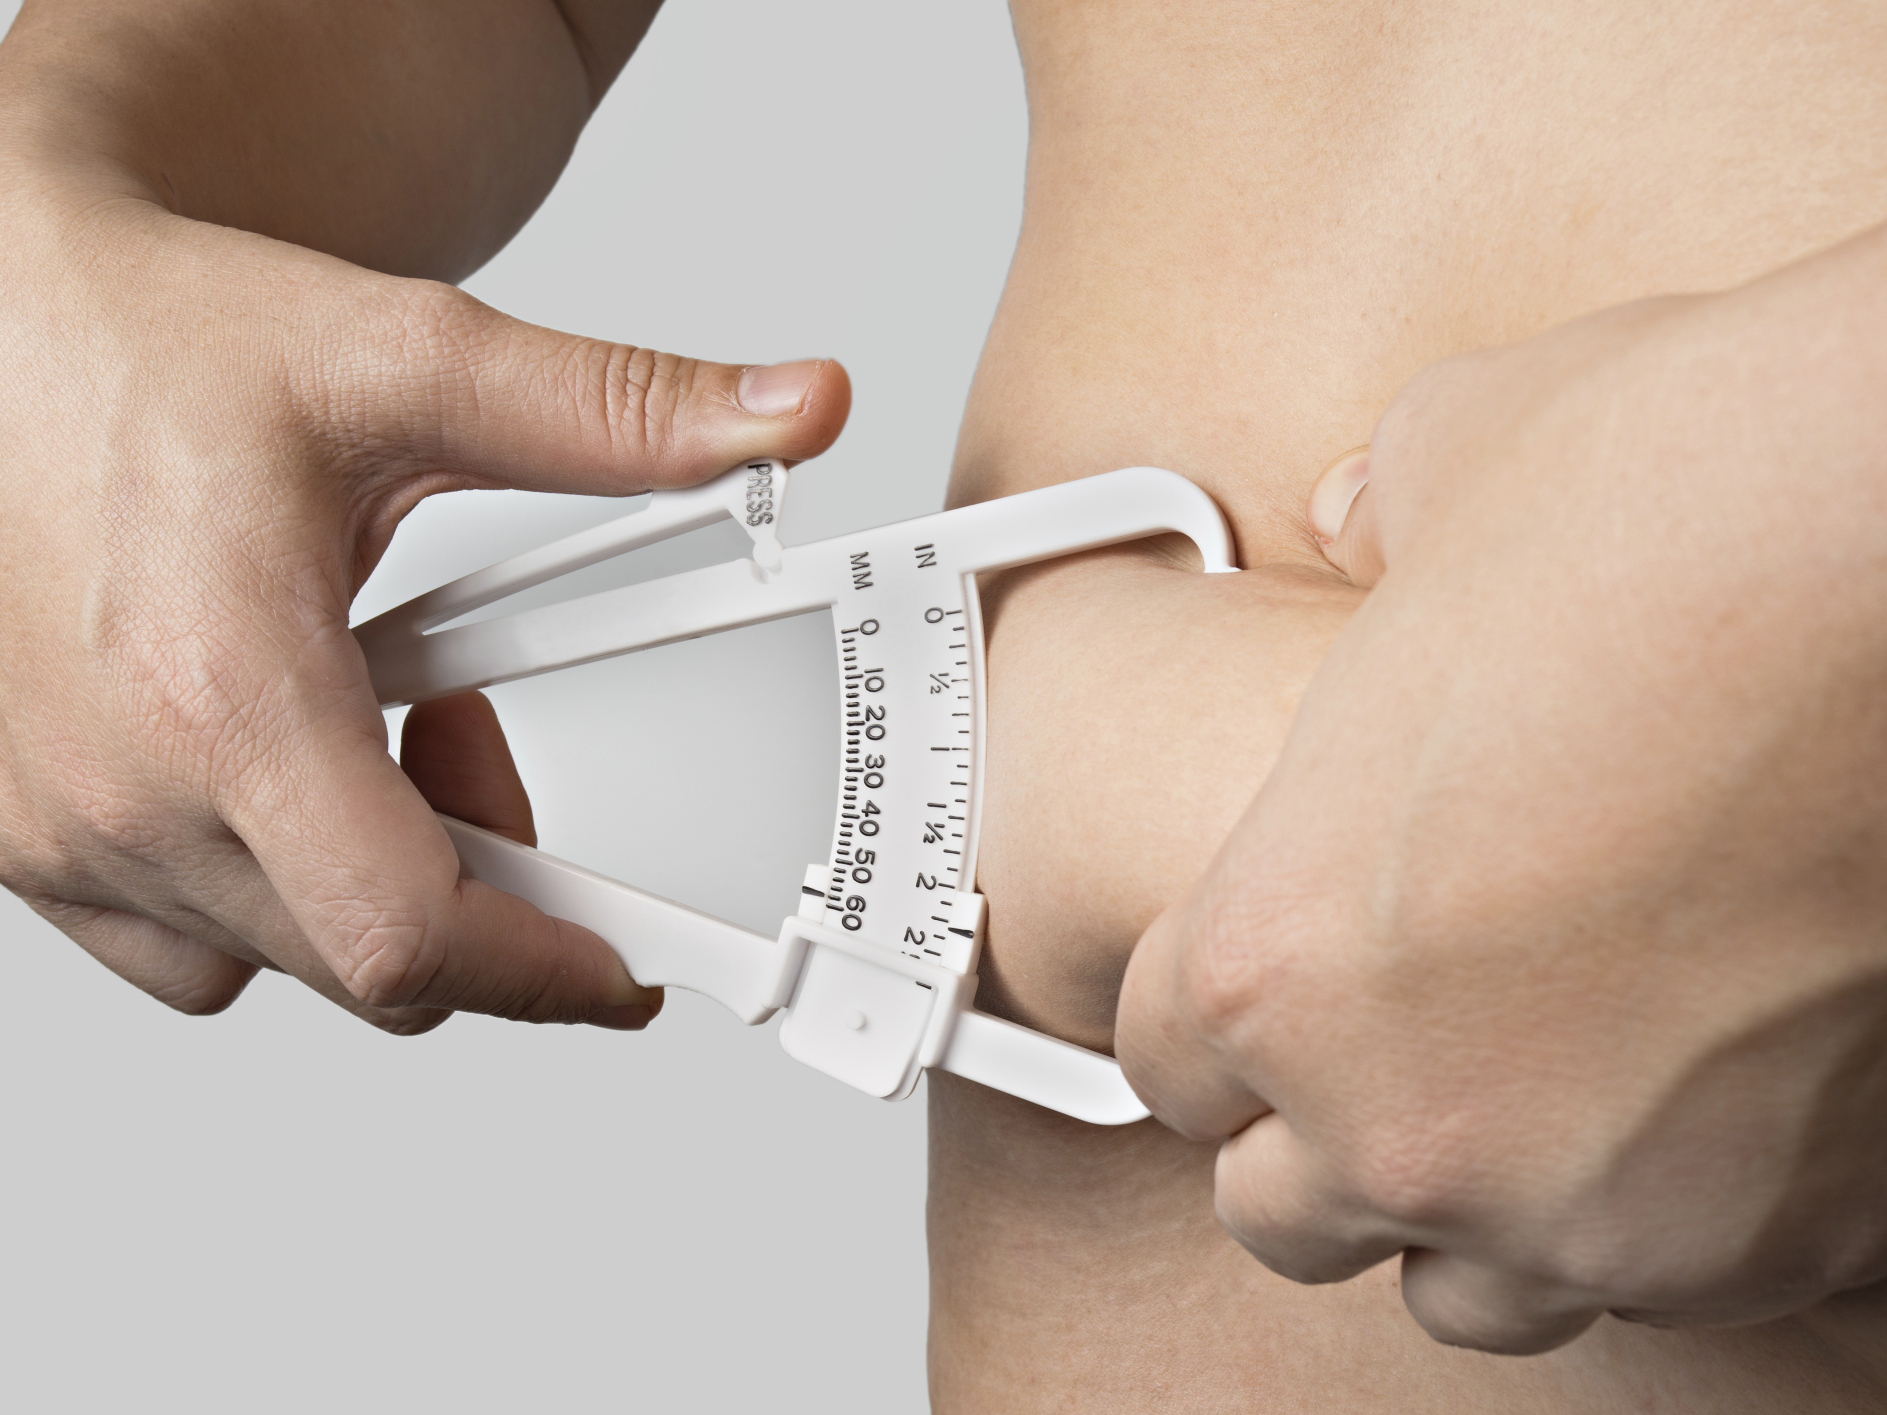 underlying issues to weight loss